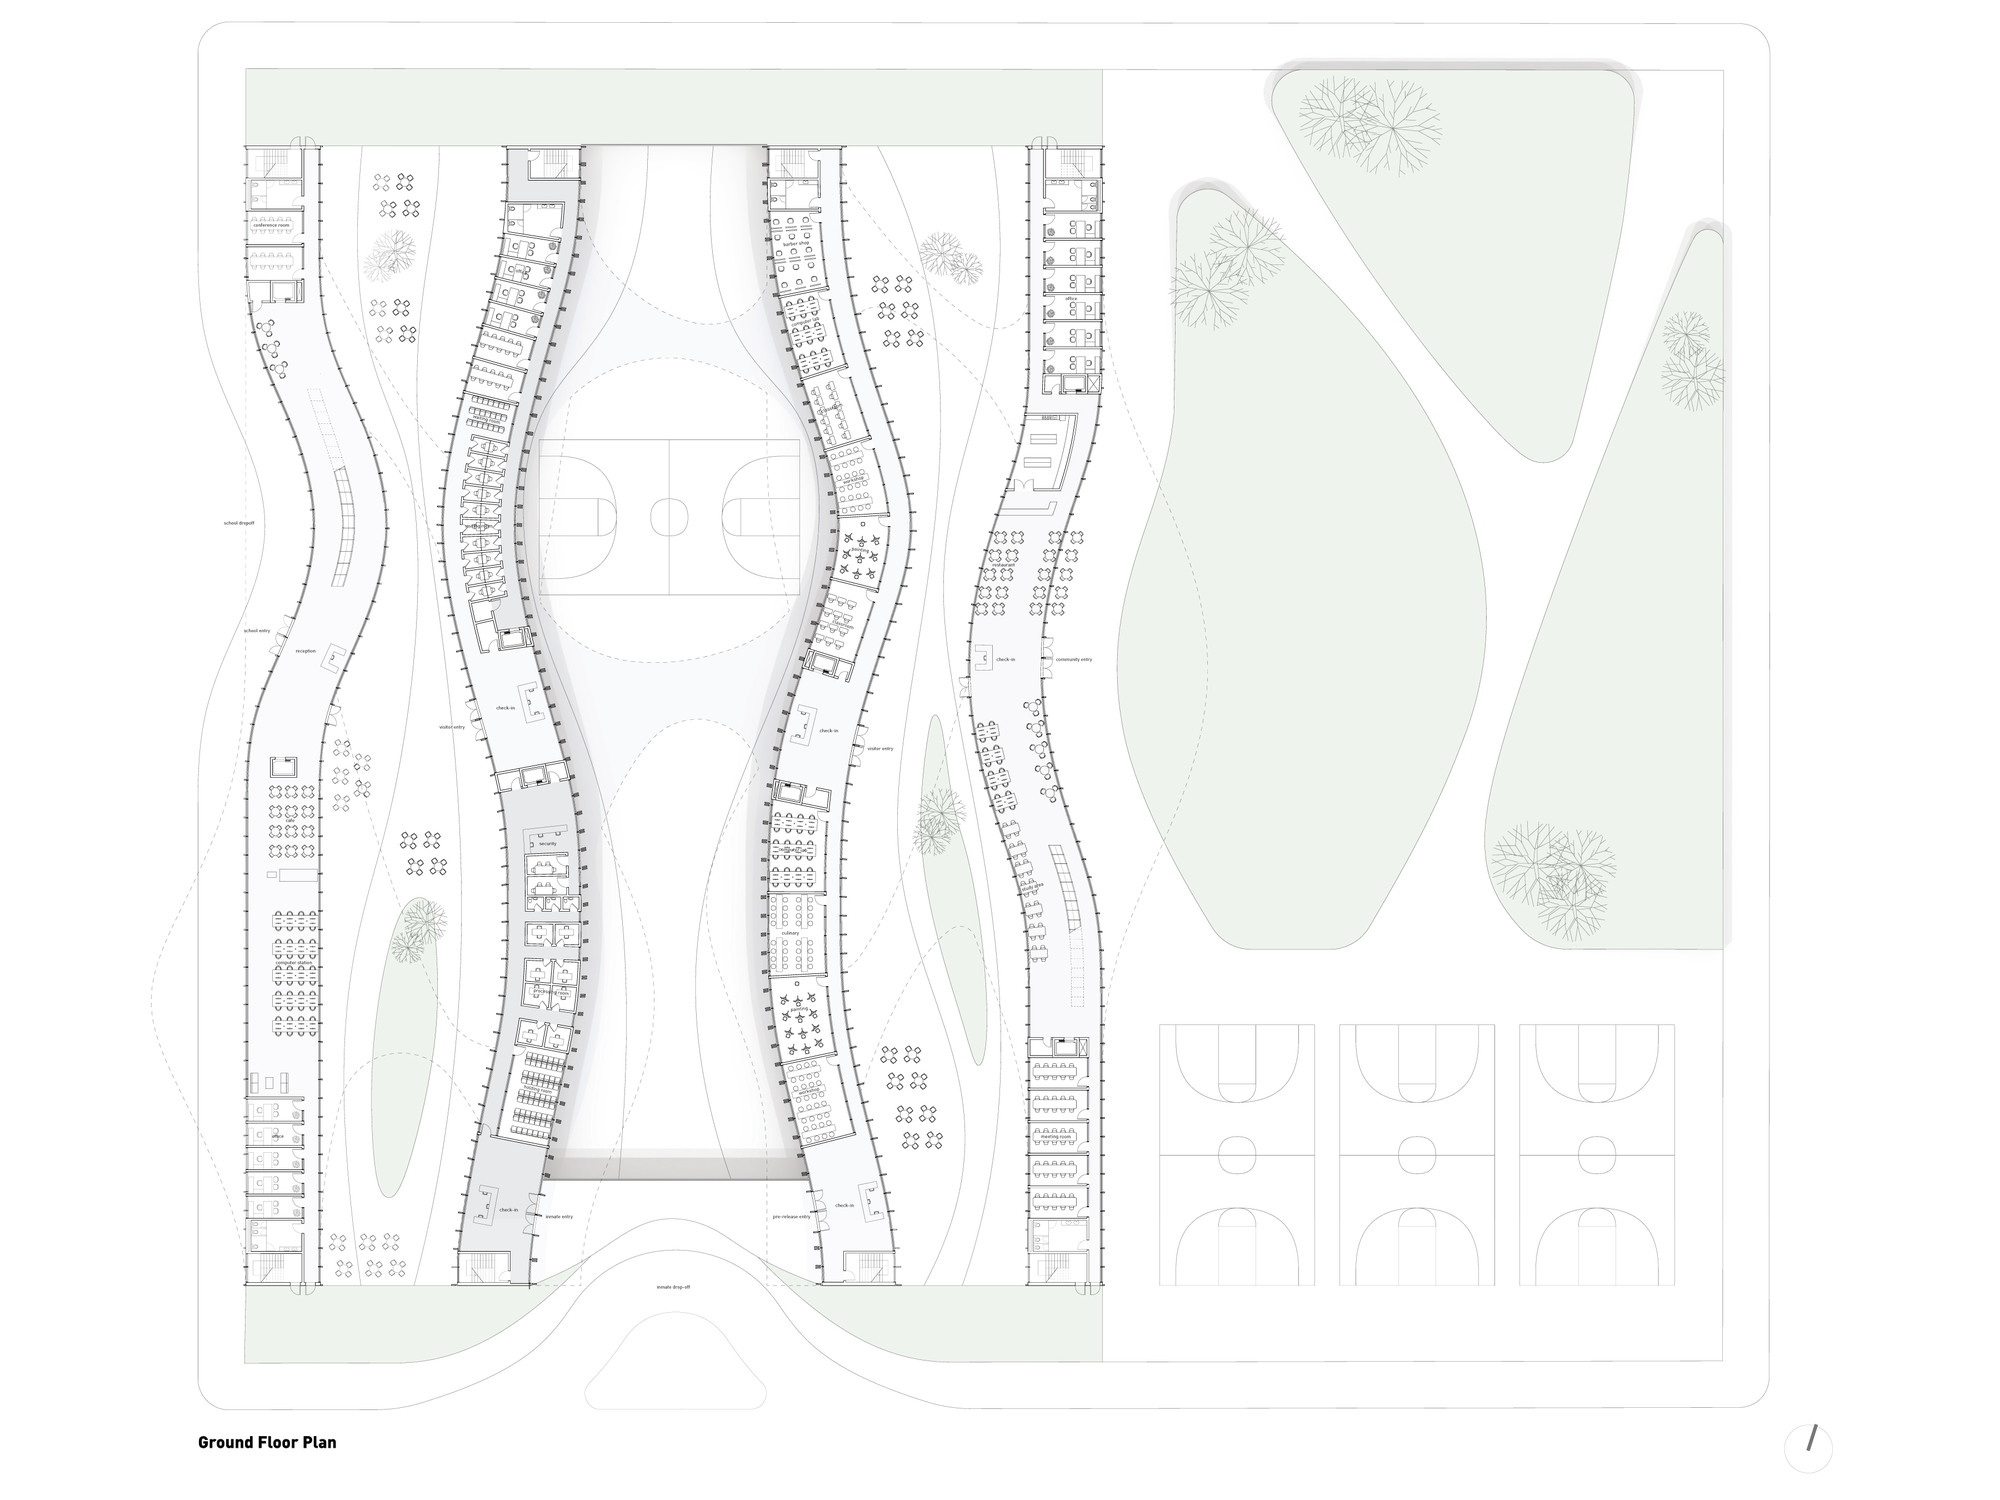 Ground Floor Plan. Image © Glen Santayana